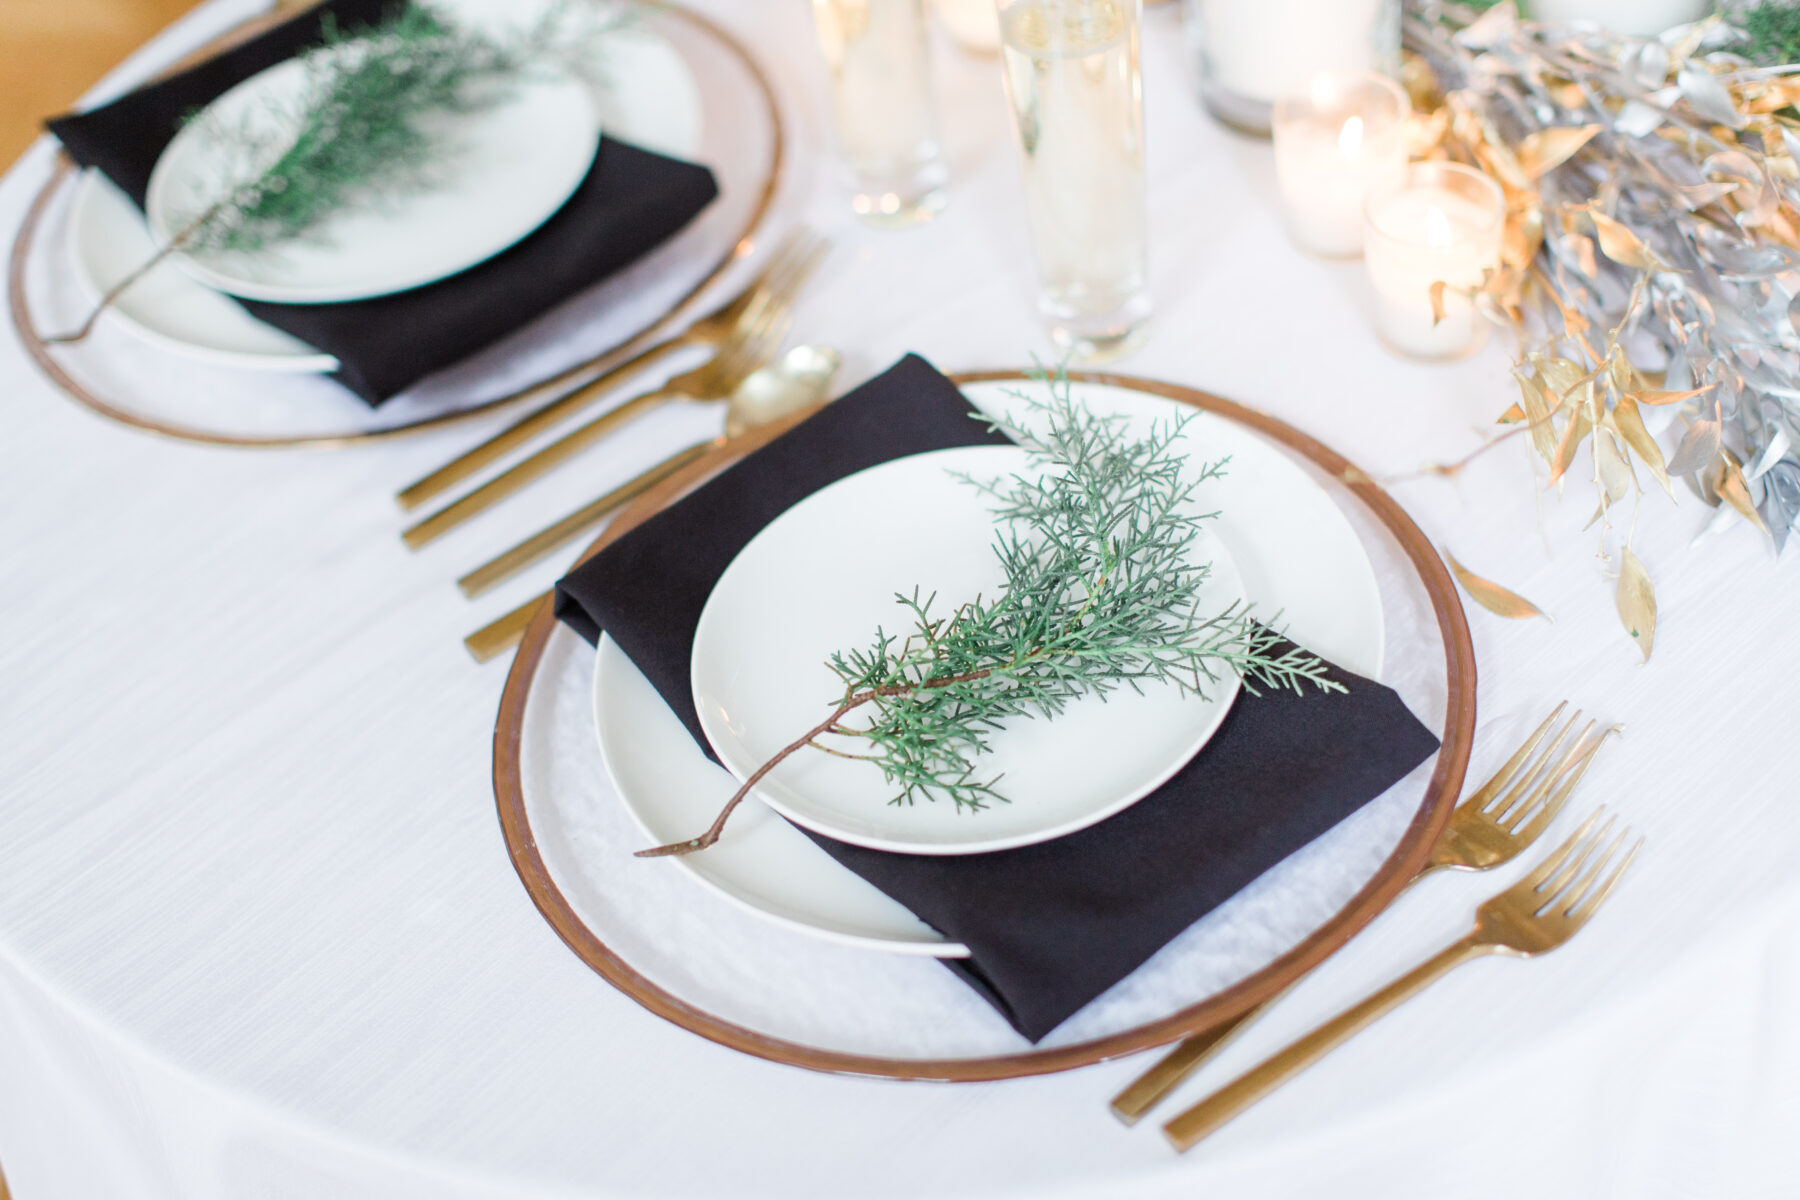 Evergreen wedding table decor: Classic, Yet Modern New Years Eve Wedding Inspiration featured on Nashville Bride Guide